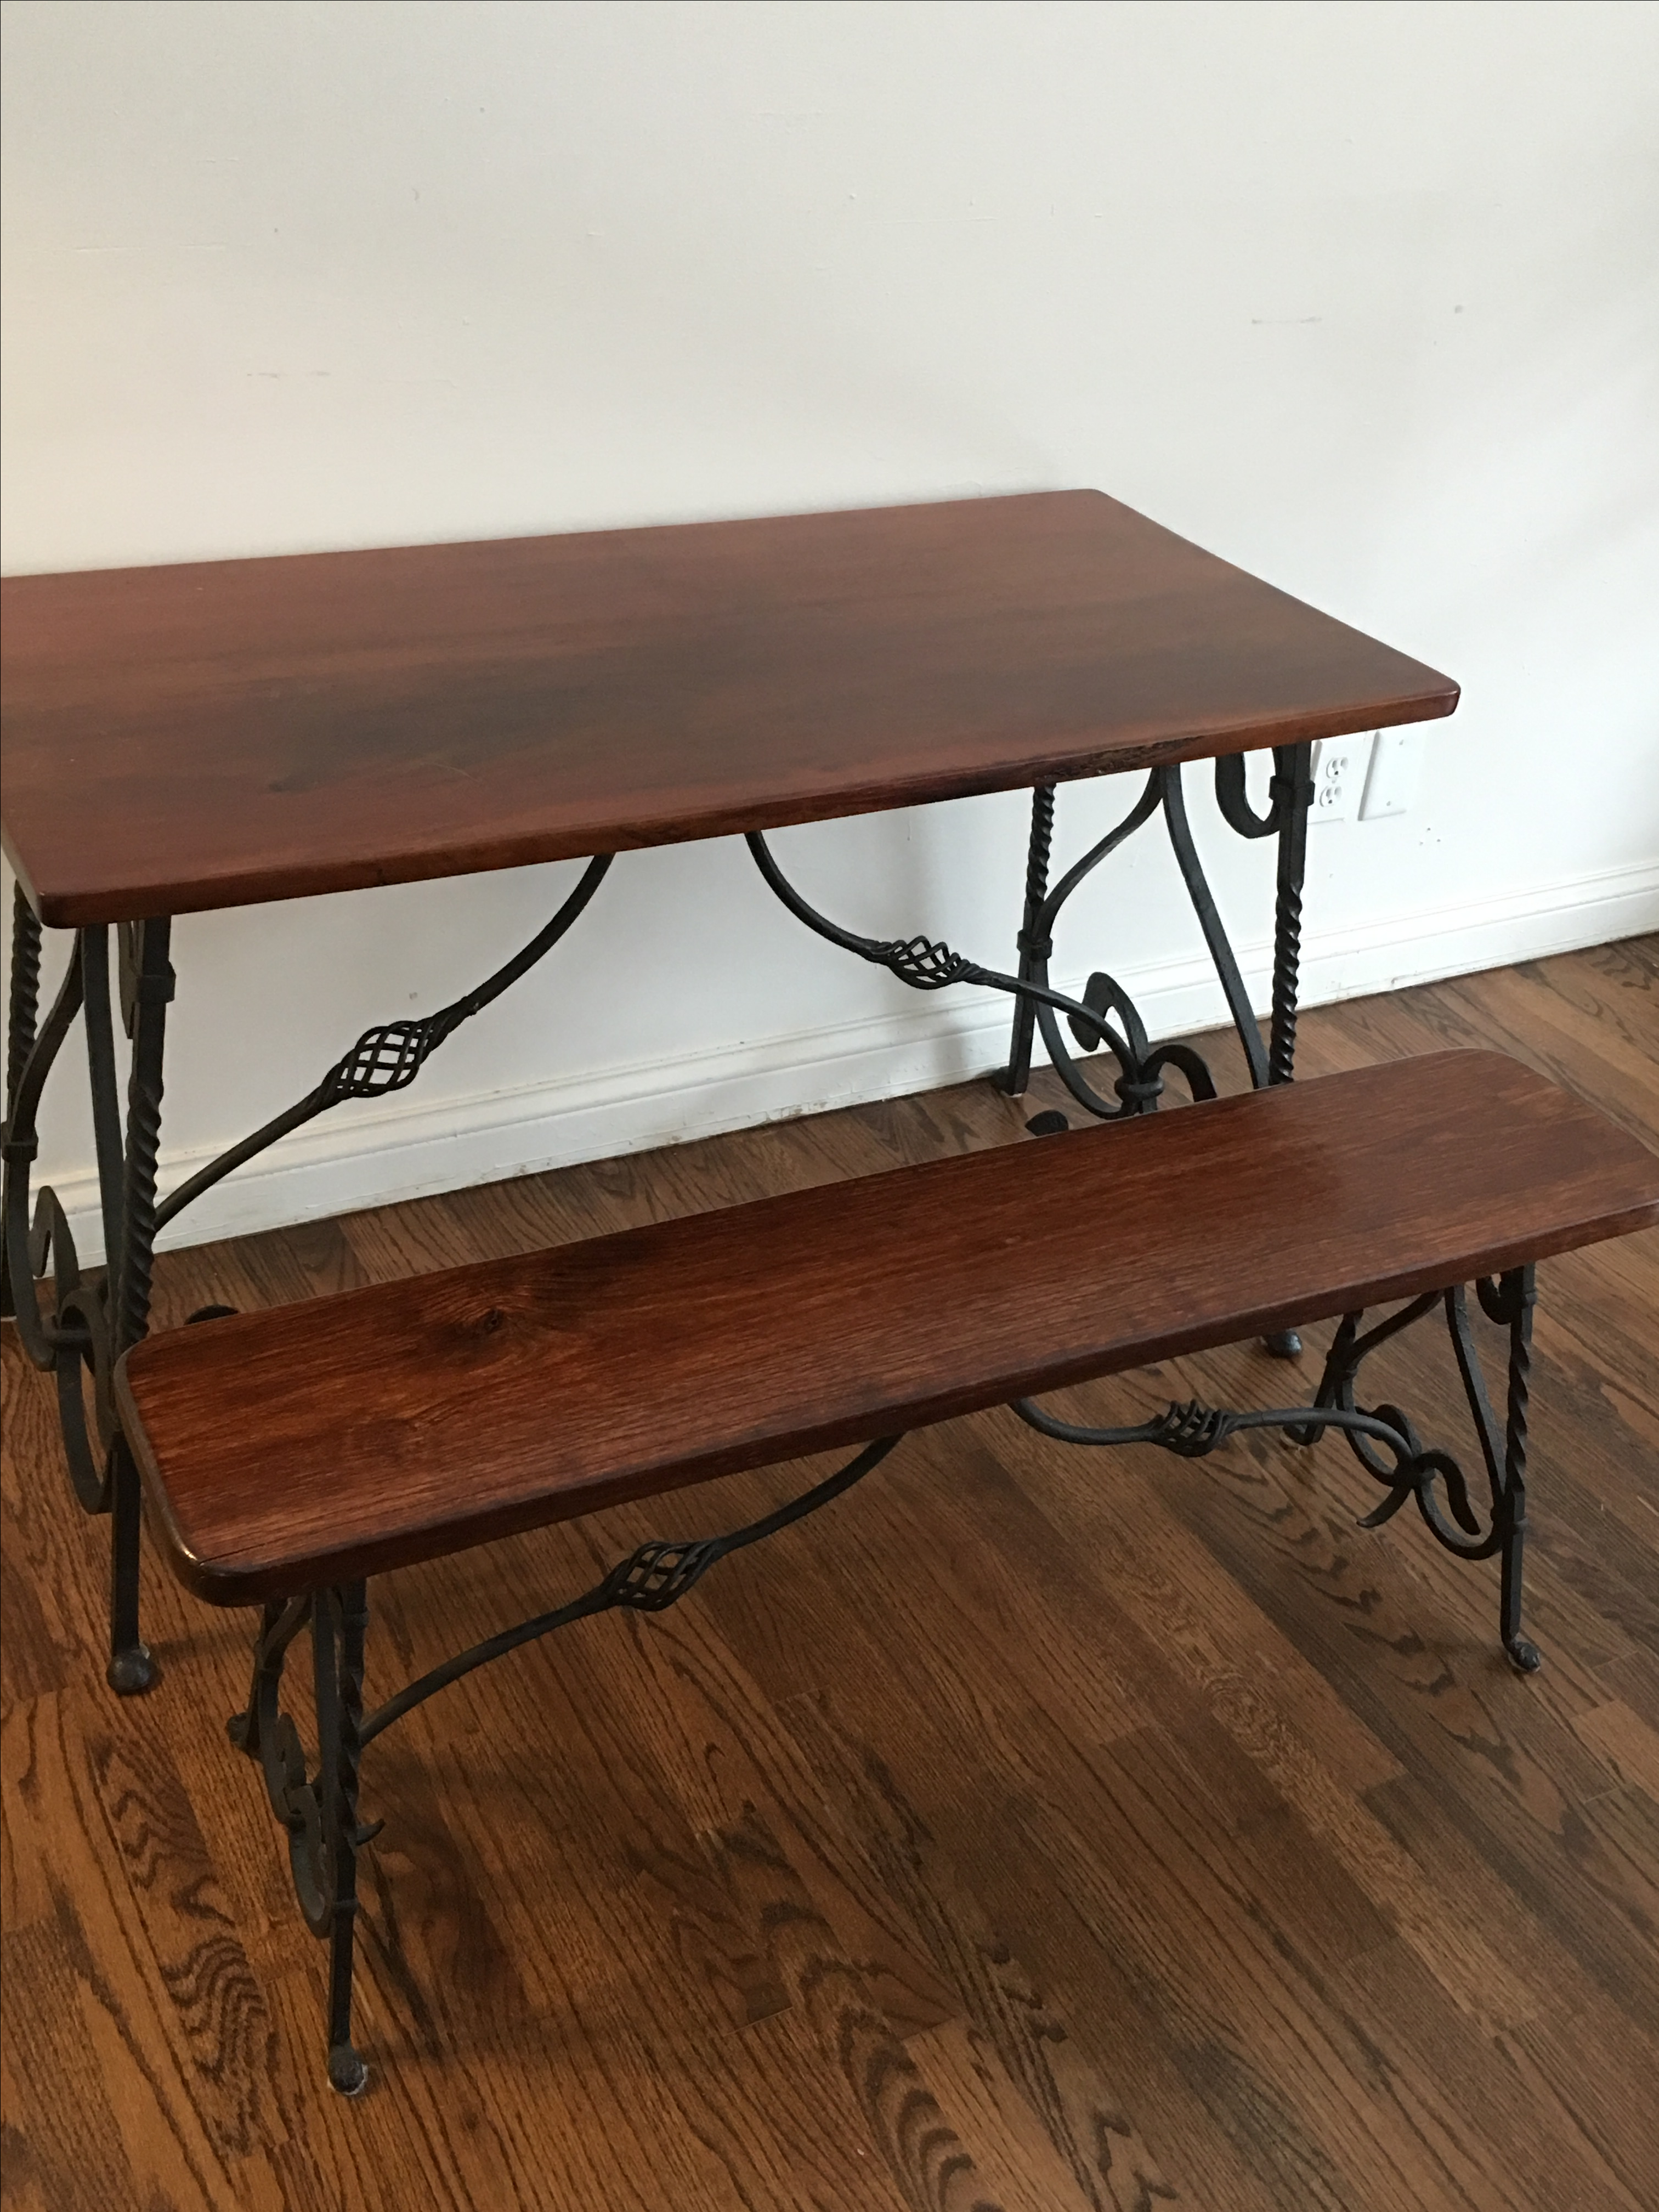 1900 Antique Wrought Iron Dining Table amp Benches Chairish : f3f09d53 7d21 4375 95ca f60e2492aa49aspectfitampwidth640ampheight640 from www.chairish.com size 640 x 640 jpeg 43kB